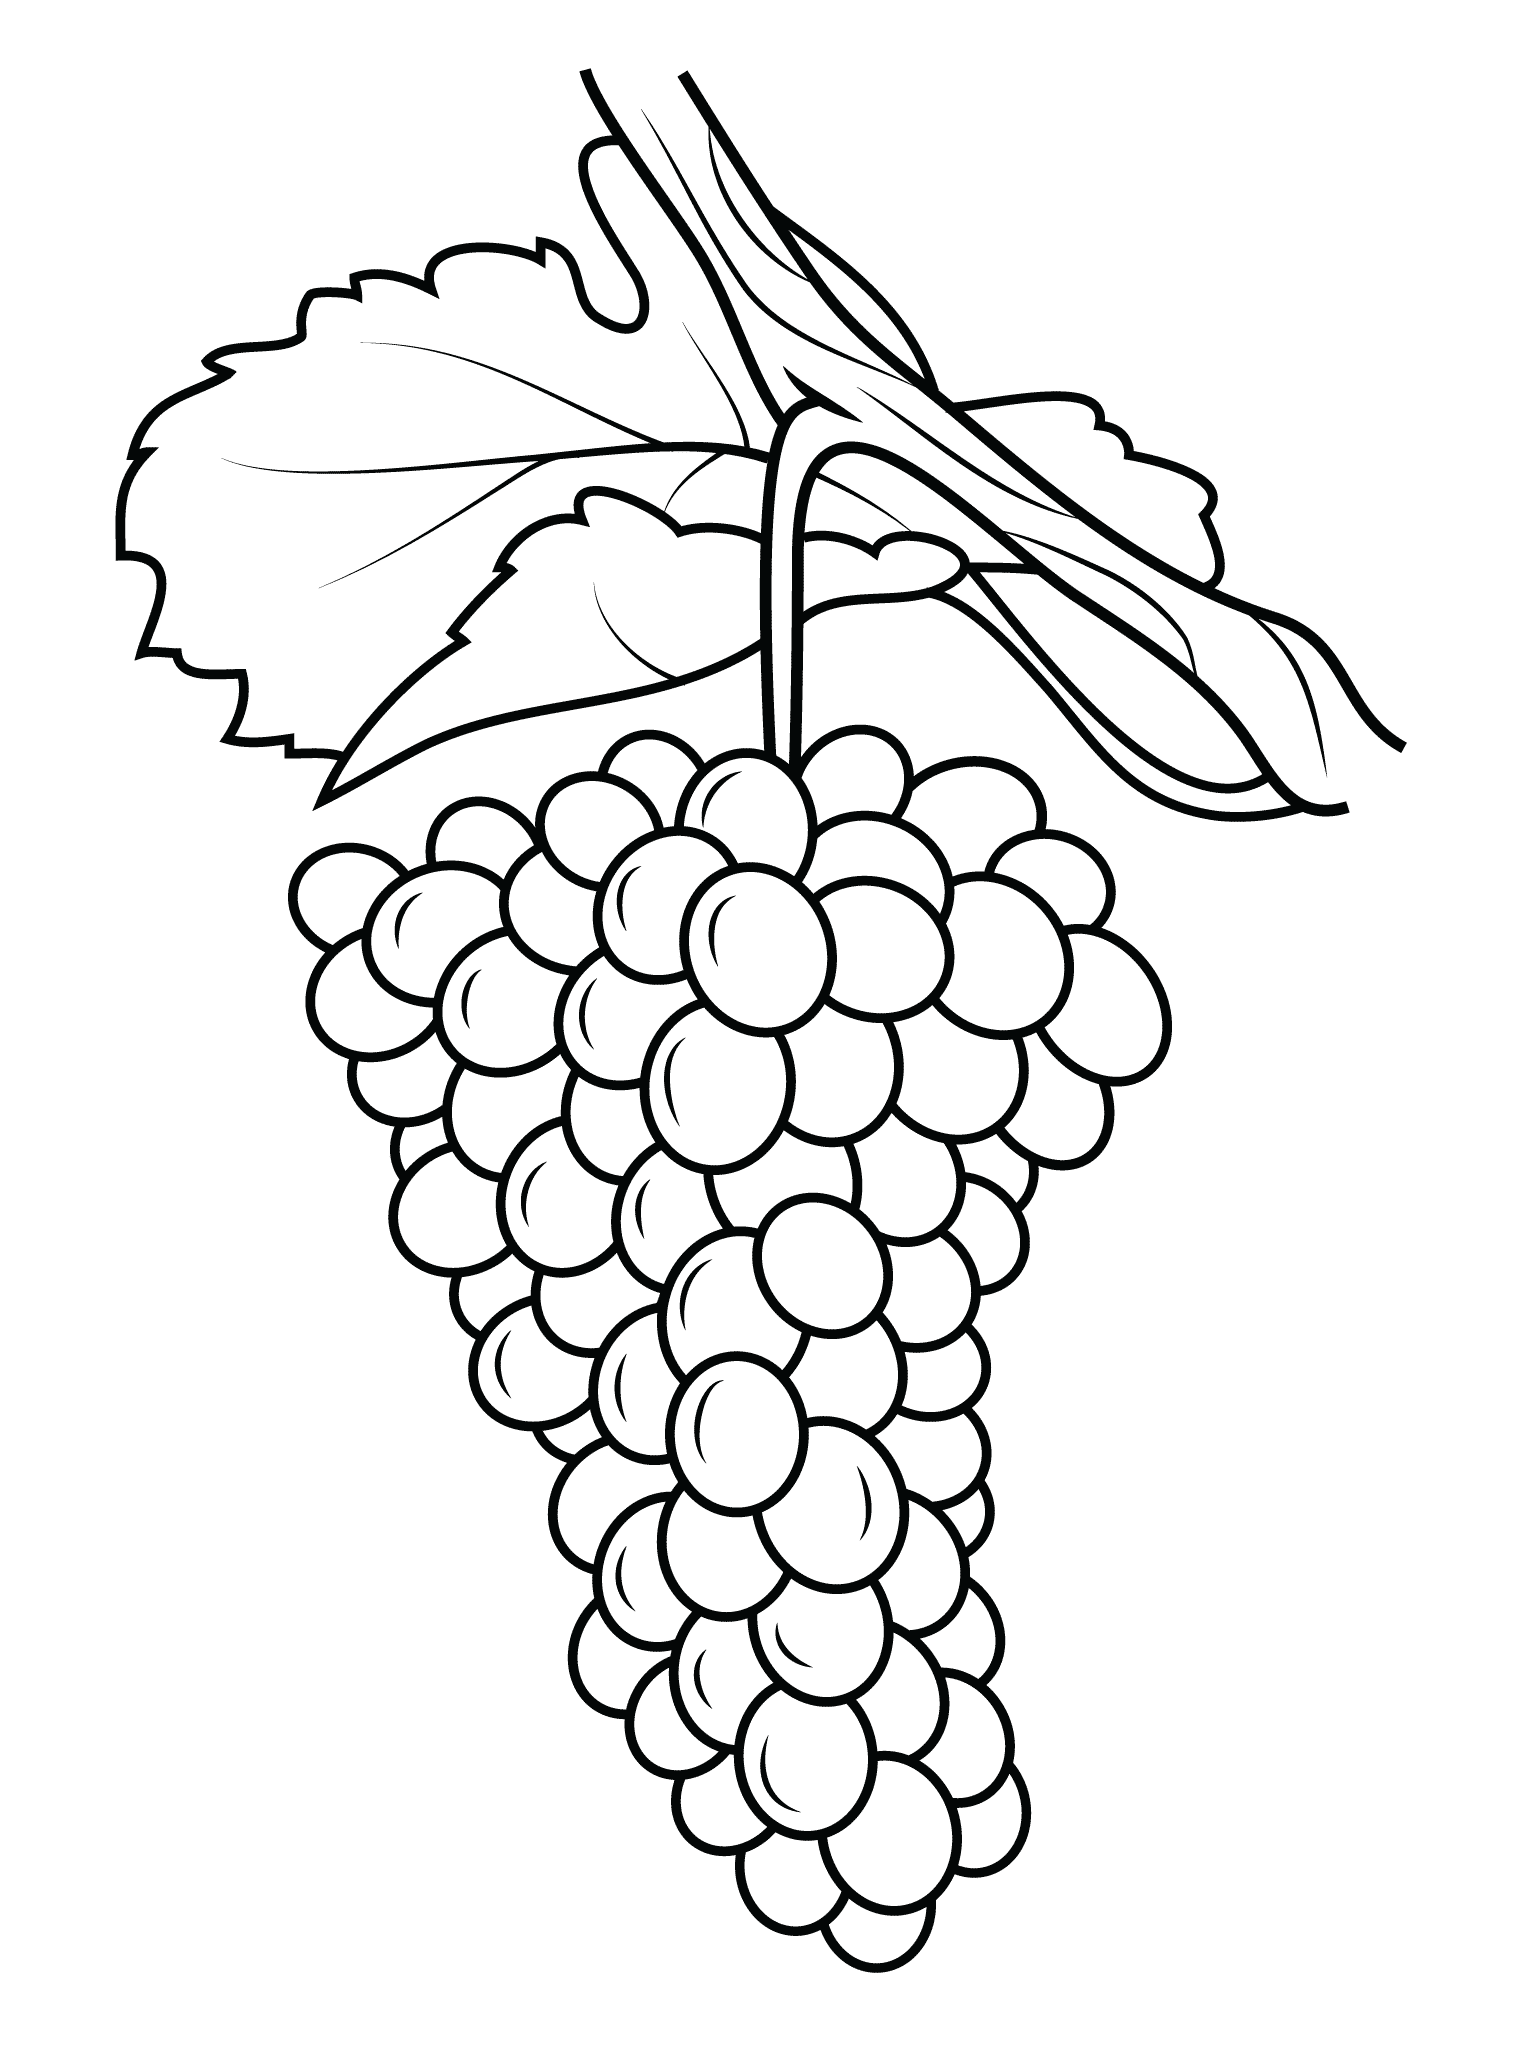 grapes pictures for colouring delicious fruit grapes coloring pages color luna grapes pictures for colouring